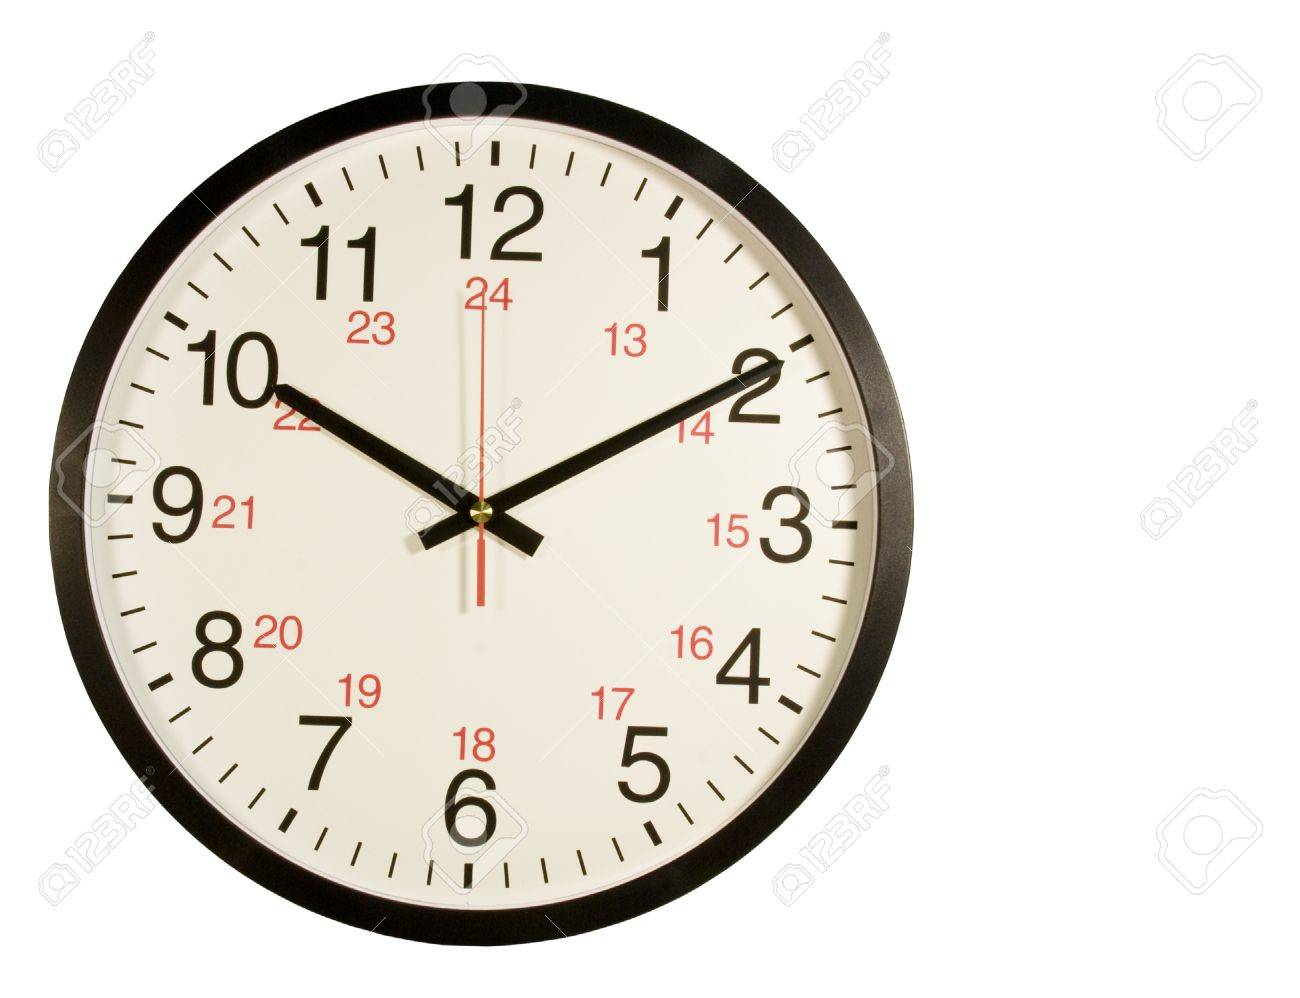 Military Time Clock >> Round Clock With Regular And Military Time On The Face Isolated